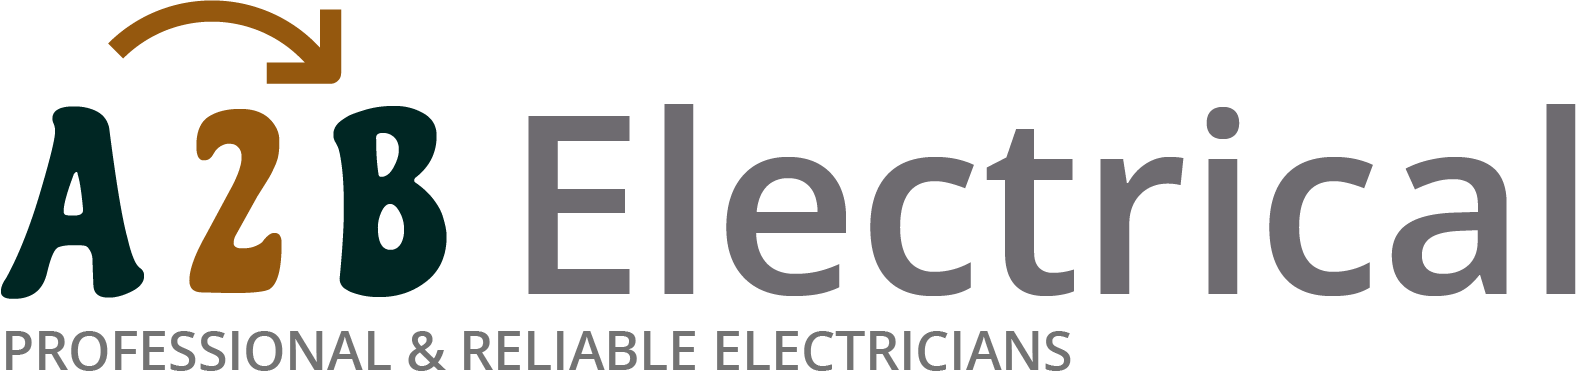 If you have electrical wiring problems in Buckhurst Hill, we can provide an electrician to have a look for you.